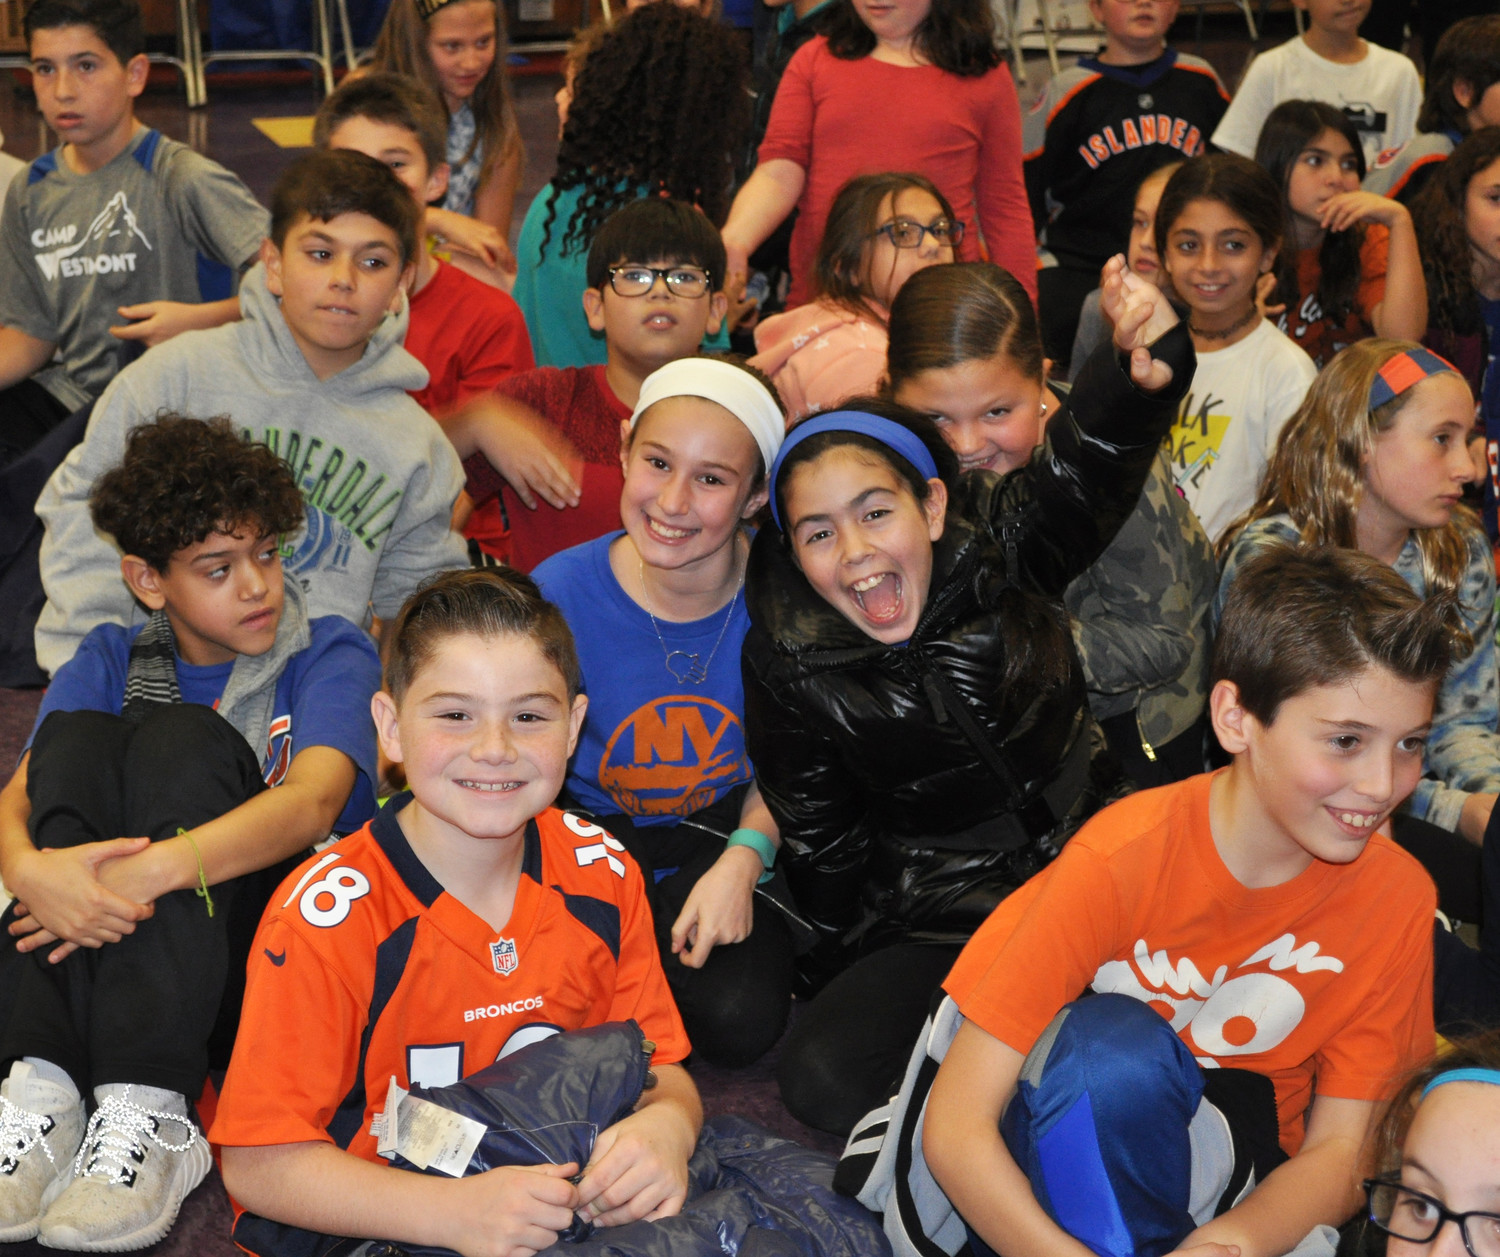 Students at Birch Elementary School in Merrick cheered with excitement as they waited for a chance to meet players from the New York Islanders. John Tavares, Jordan Eberle and Nick Leddy visited the school on Nov. 4 for Islanders School Day.